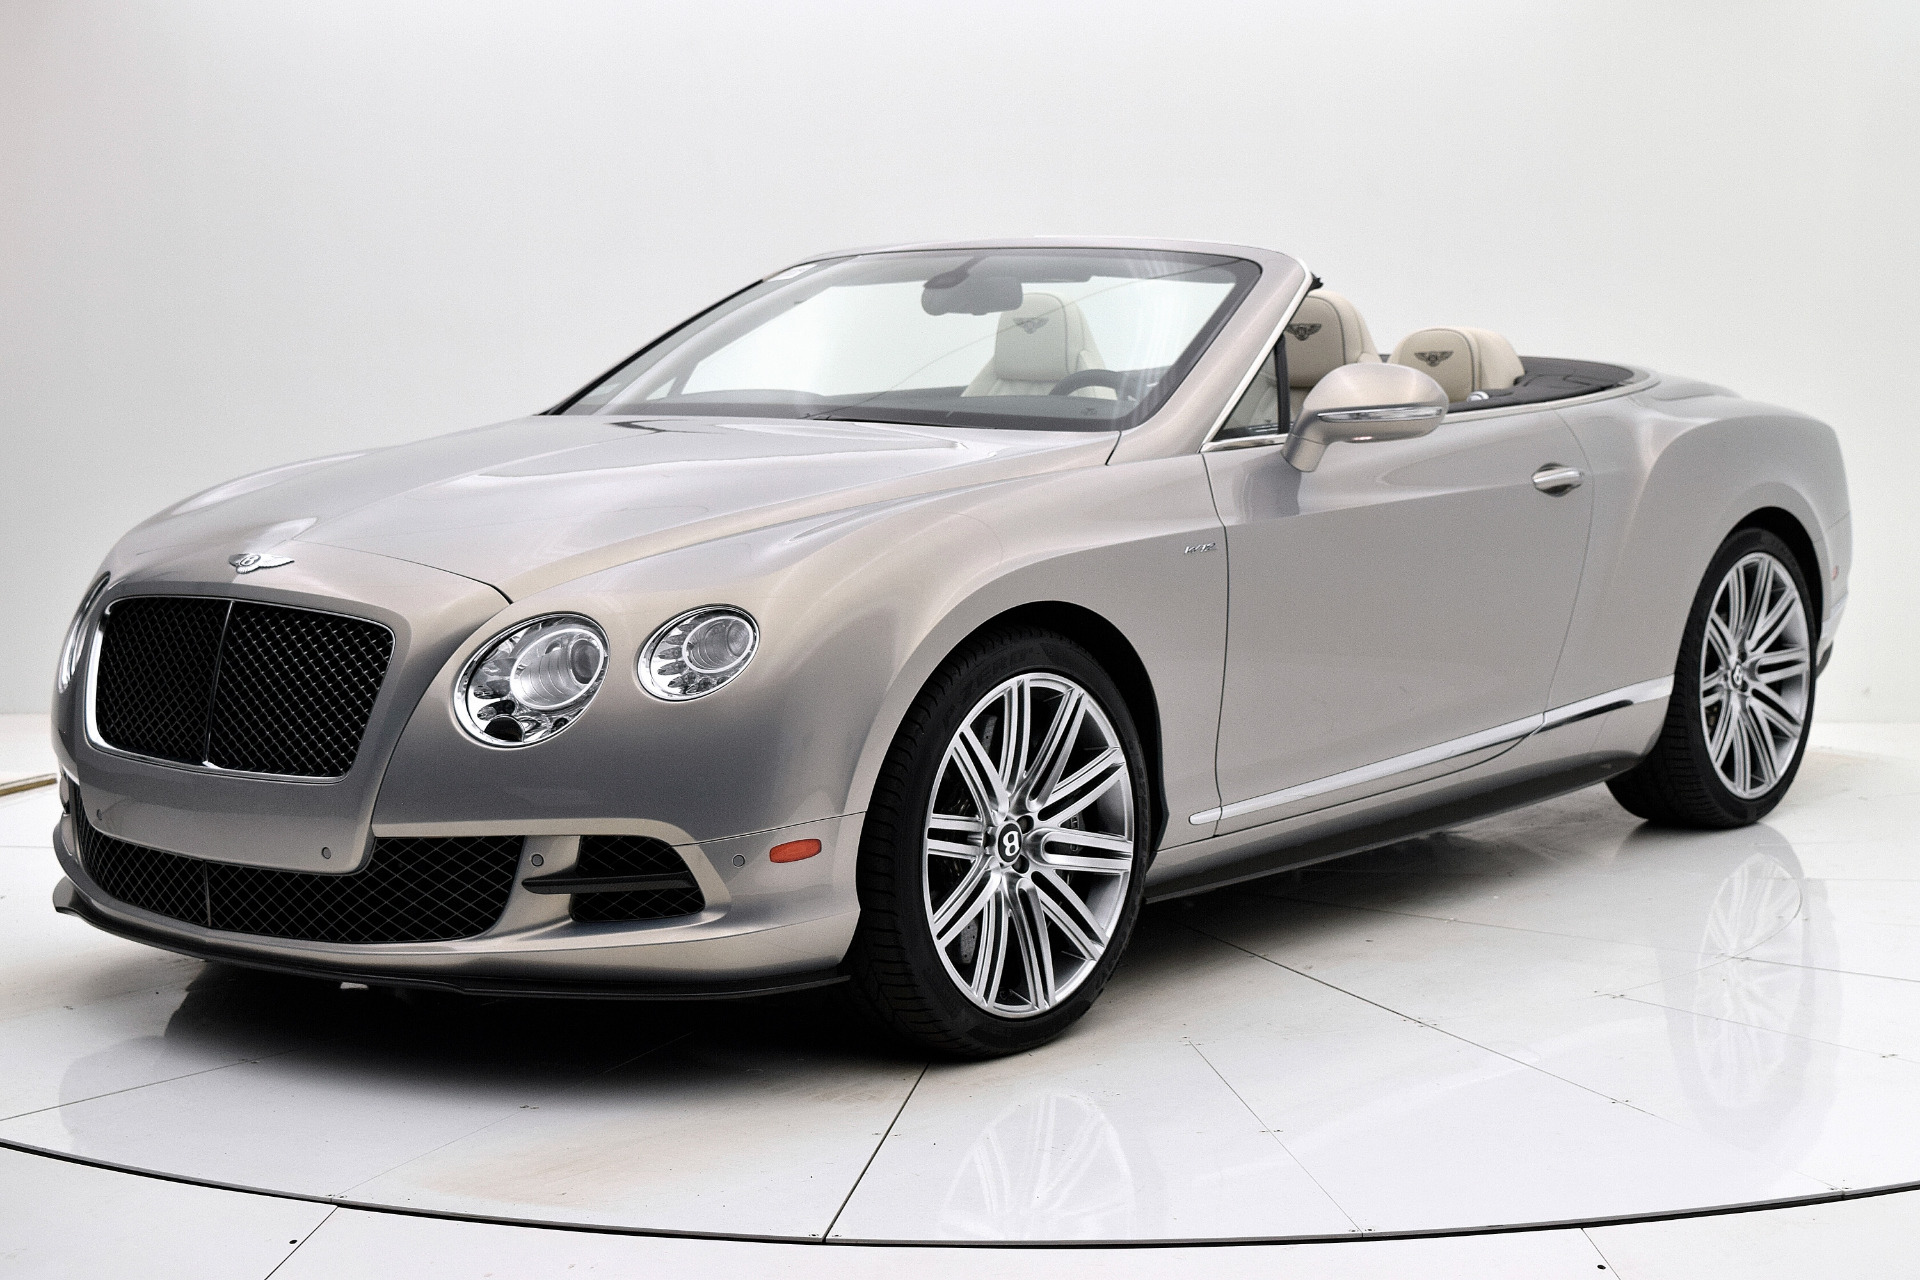 Used 2014 Bentley Continental GT Speed Convertible for sale Sold at F.C. Kerbeck Lamborghini Palmyra N.J. in Palmyra NJ 08065 2